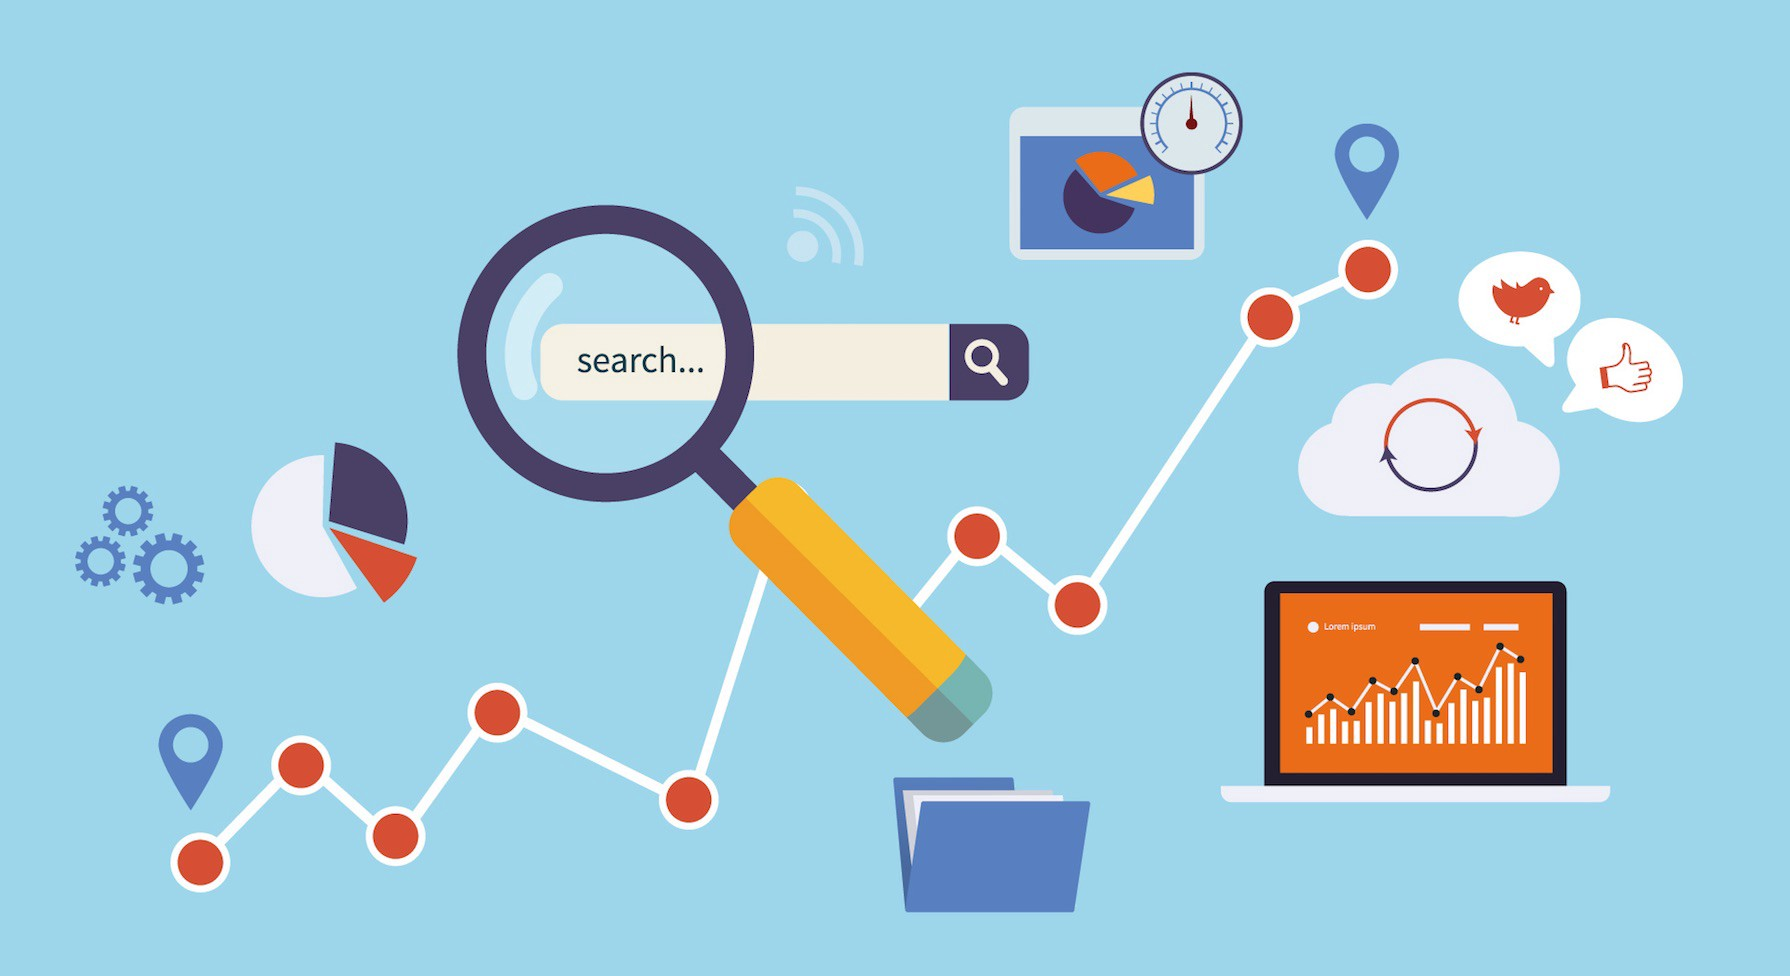 7 Easy Steps to Enhance ROI by Leveraging Data into Your Marketing Strategy